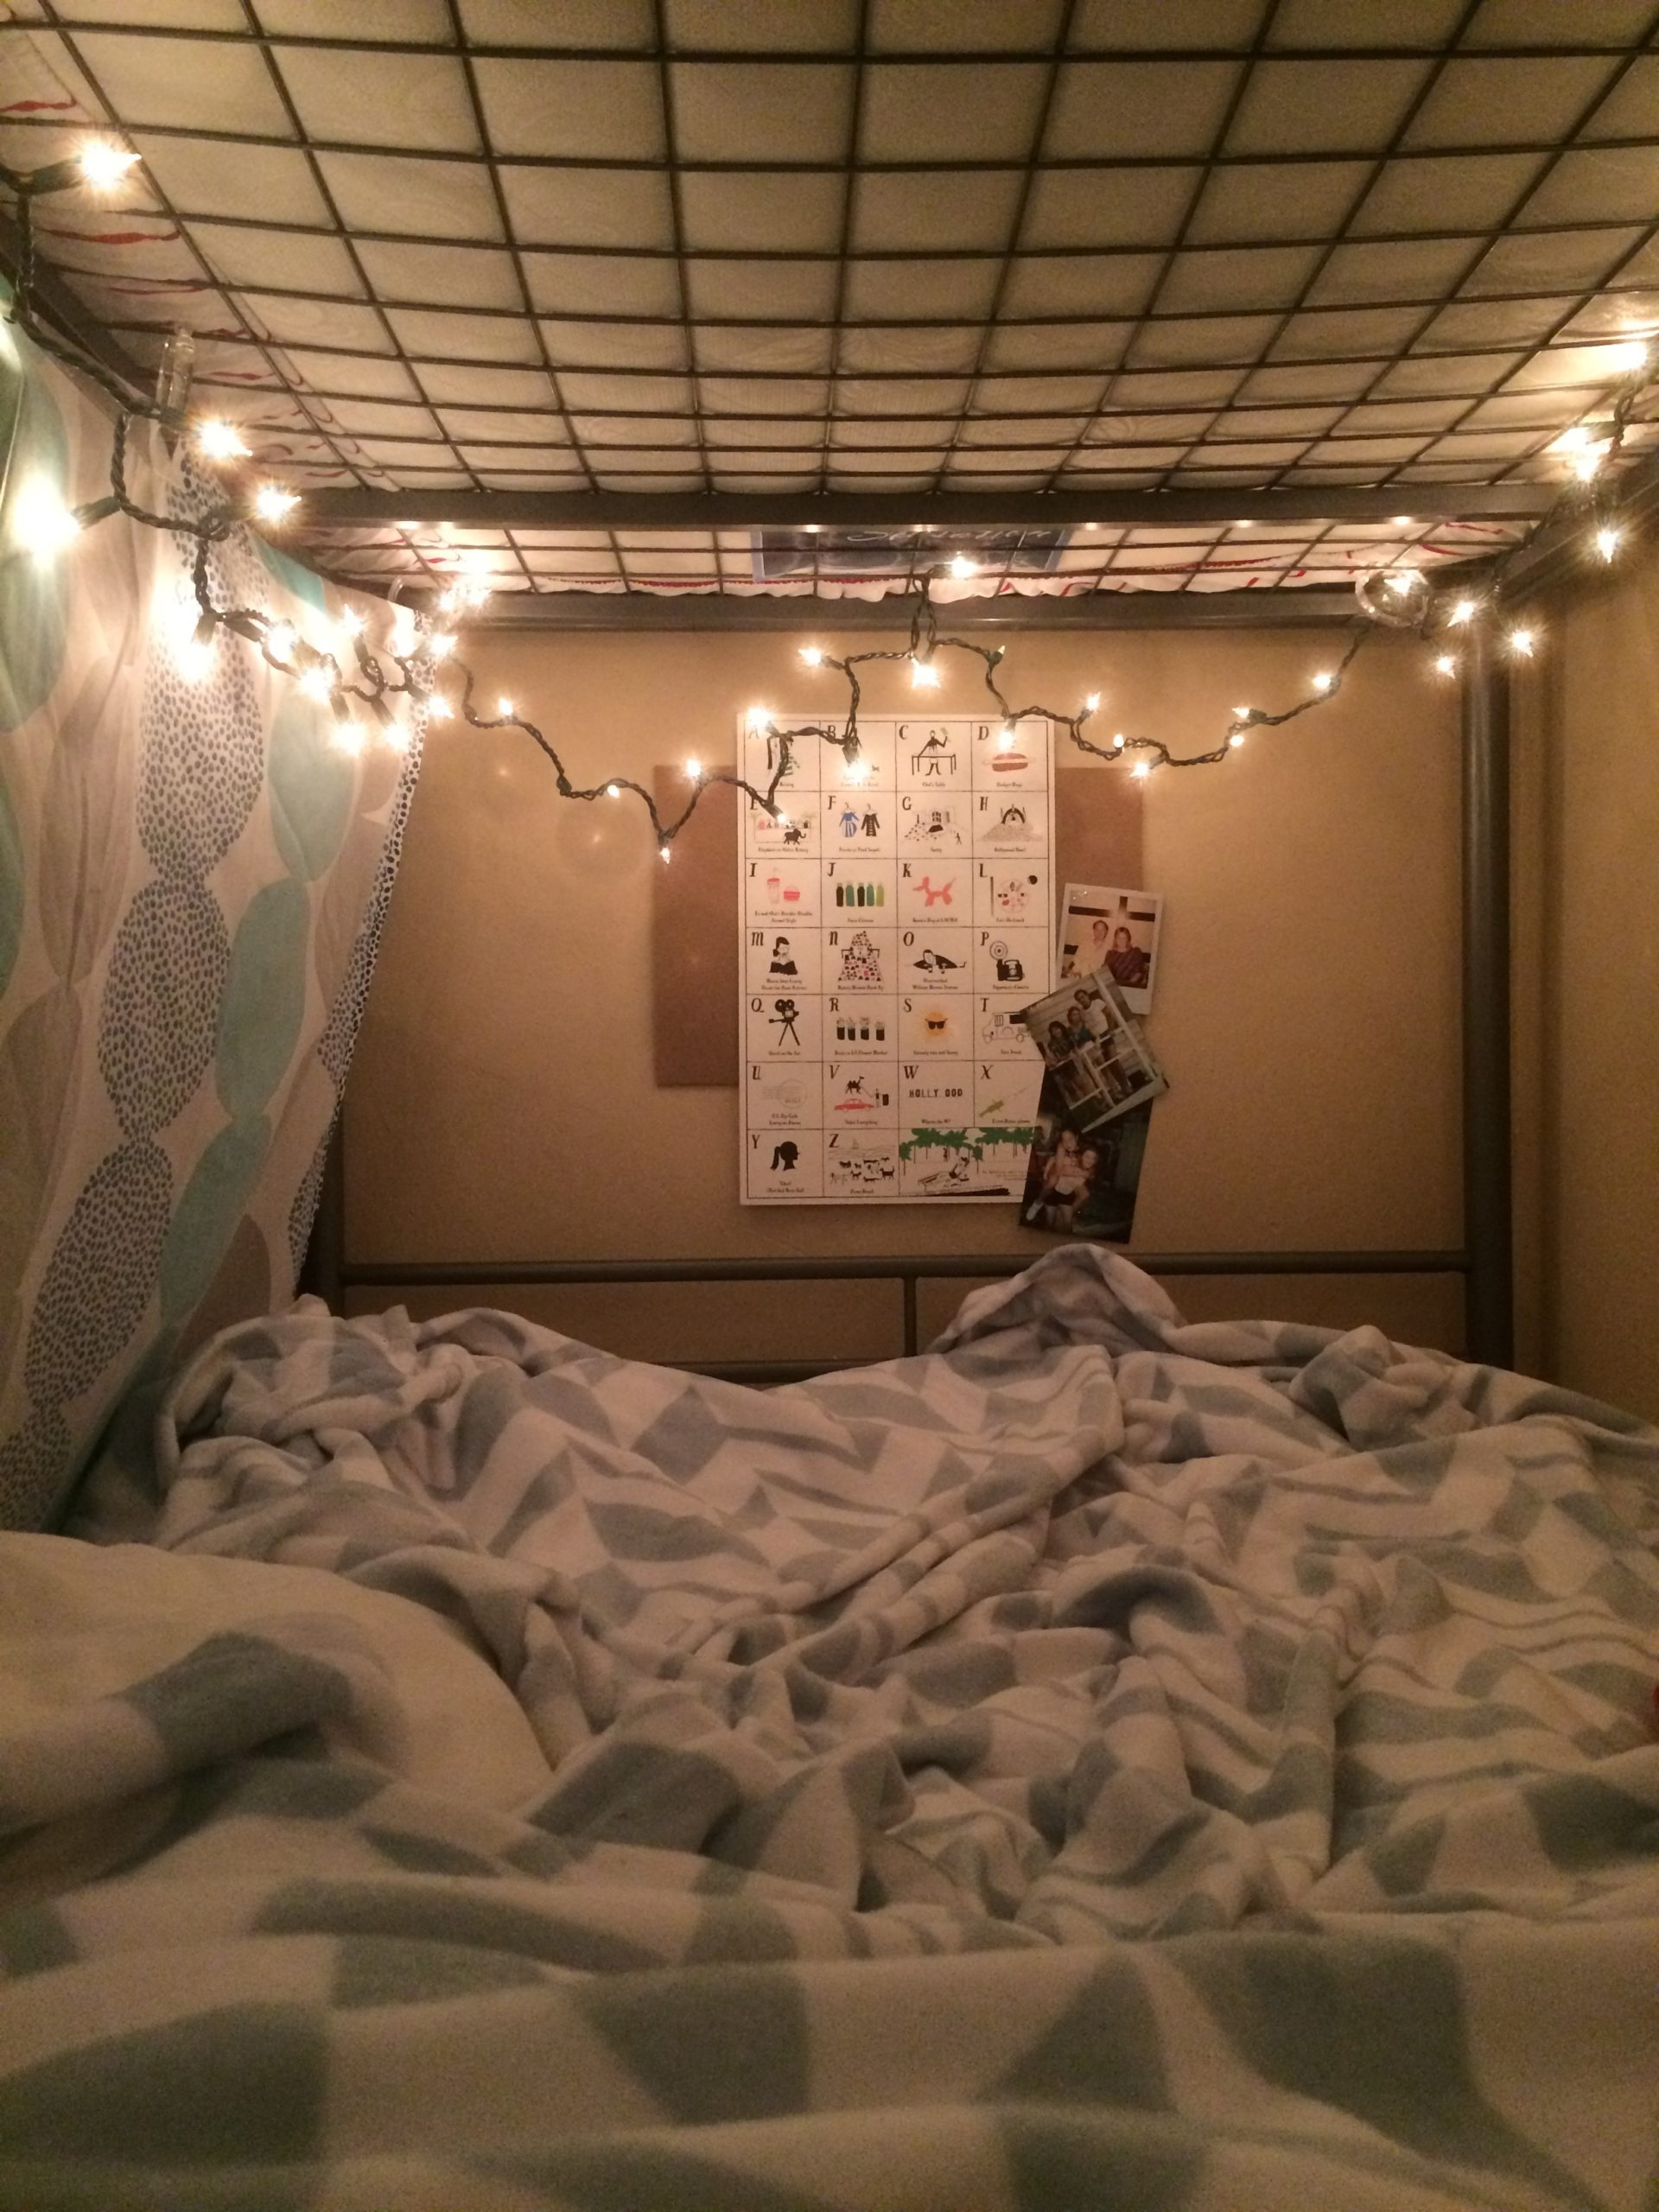 Sleeping in Bunk Beds Reminds Me…